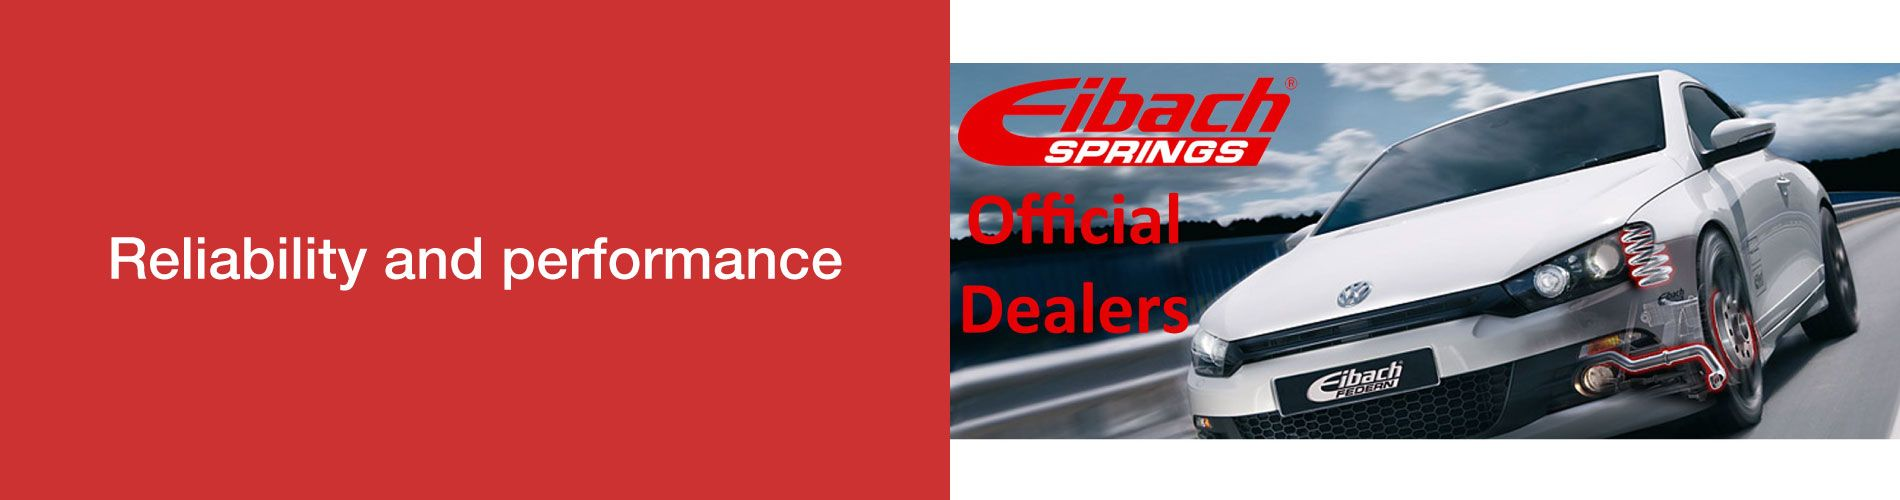 Reliability and performance | Eibach Springs